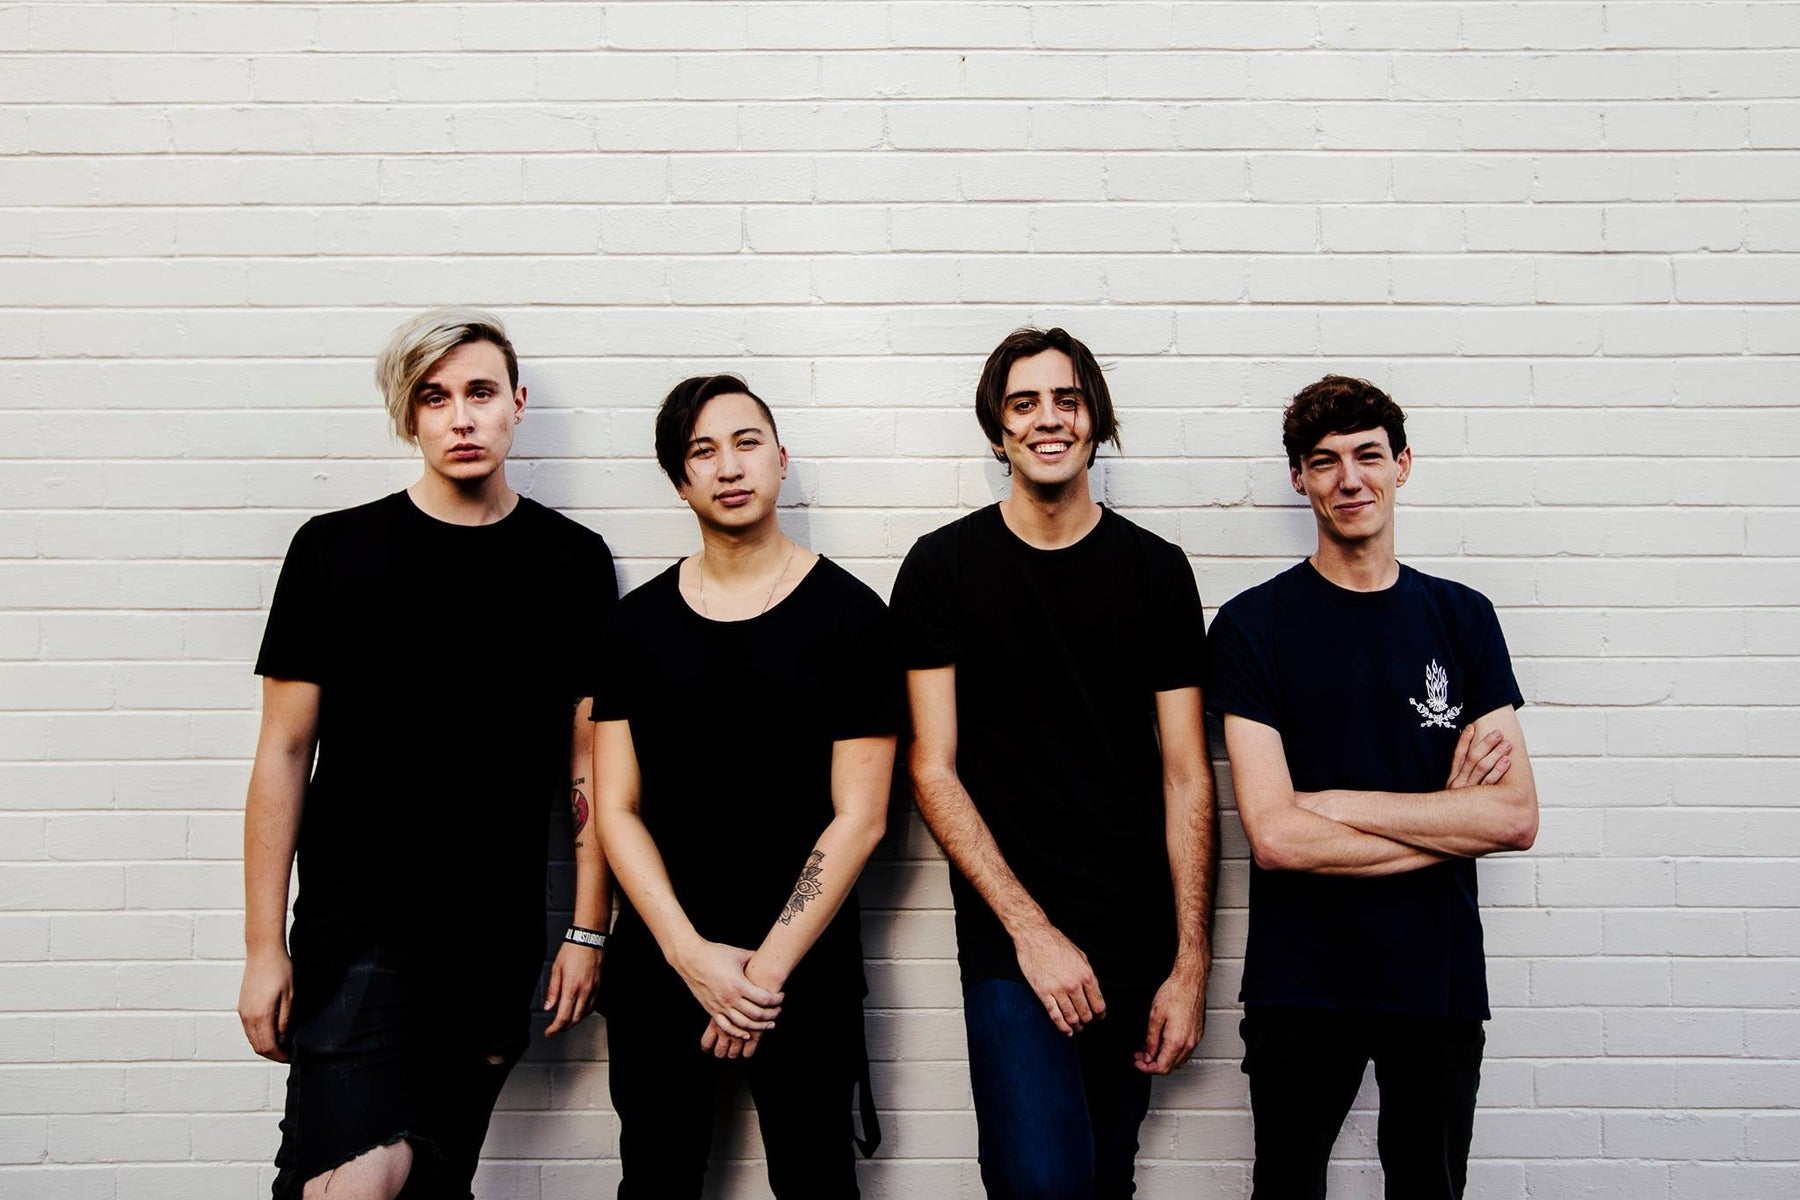 WITH CONFIDENCE SIGNING & ACOUSTIC SET